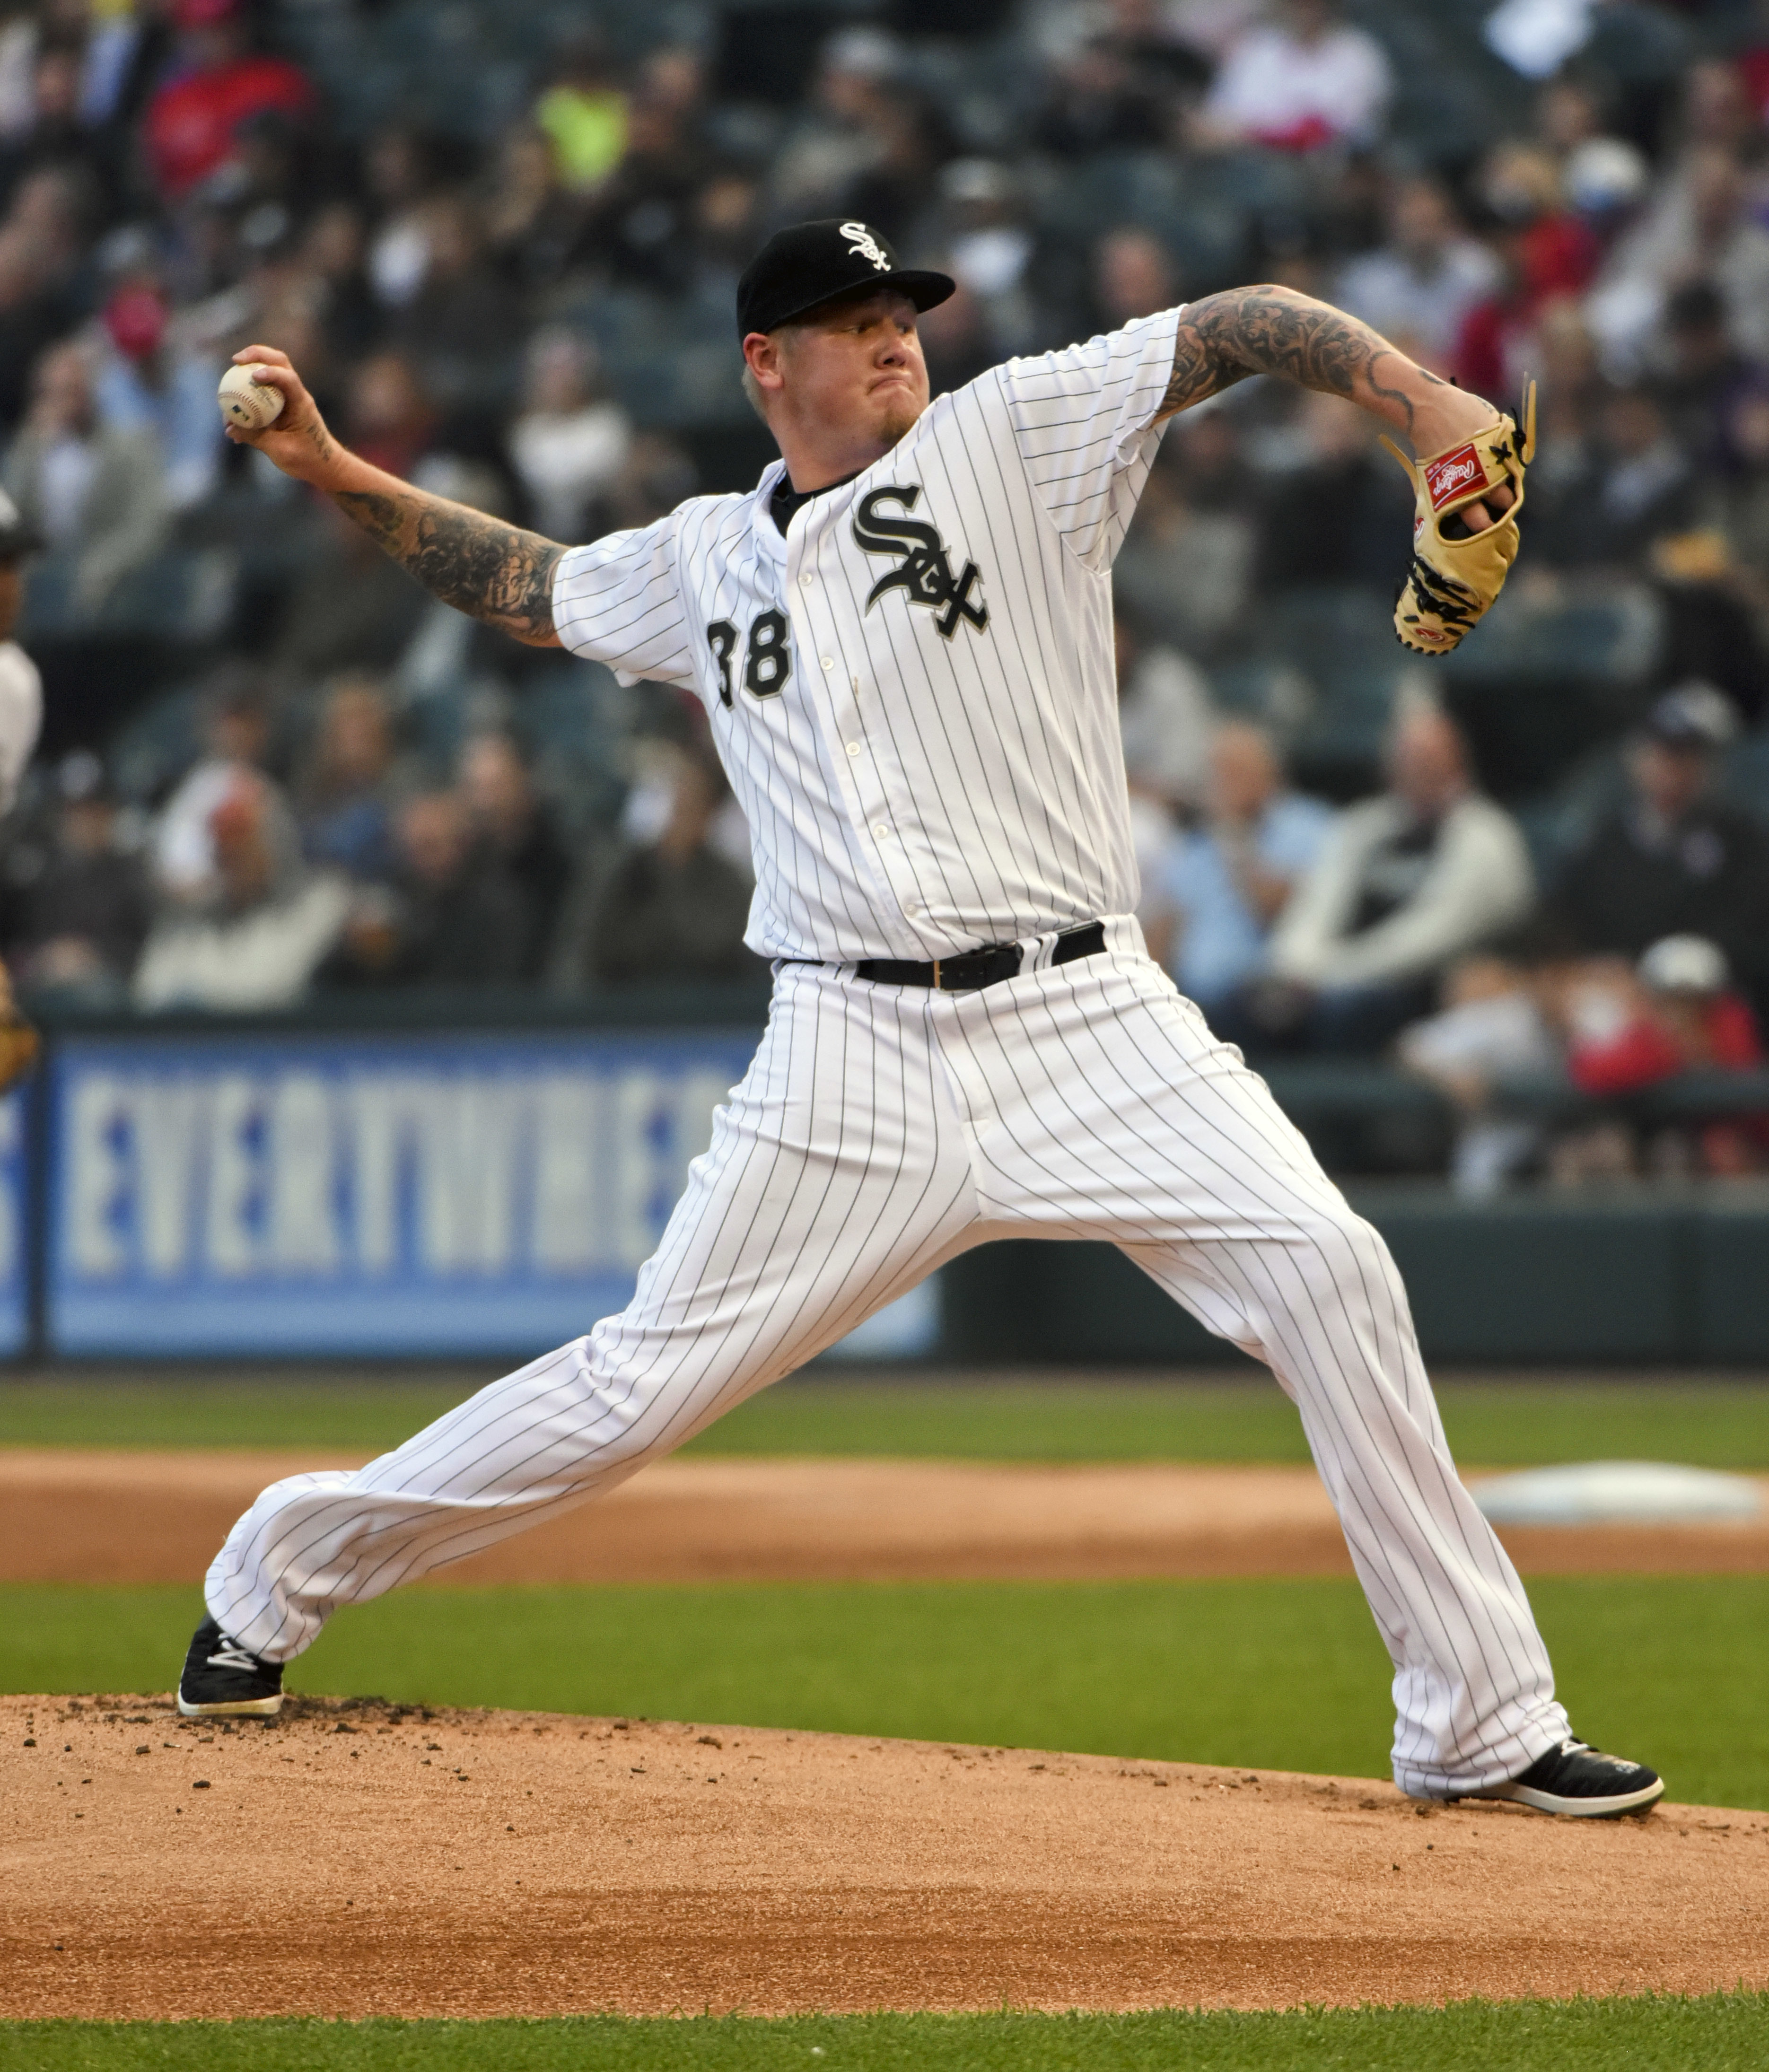 Chicago White Sox's starting pitcher Mat Latos delivers against the Washington Nationals during the first inning of a baseball game in Chicago on Tuesday, June 7, 2016. (AP Photo/Matt Marton)